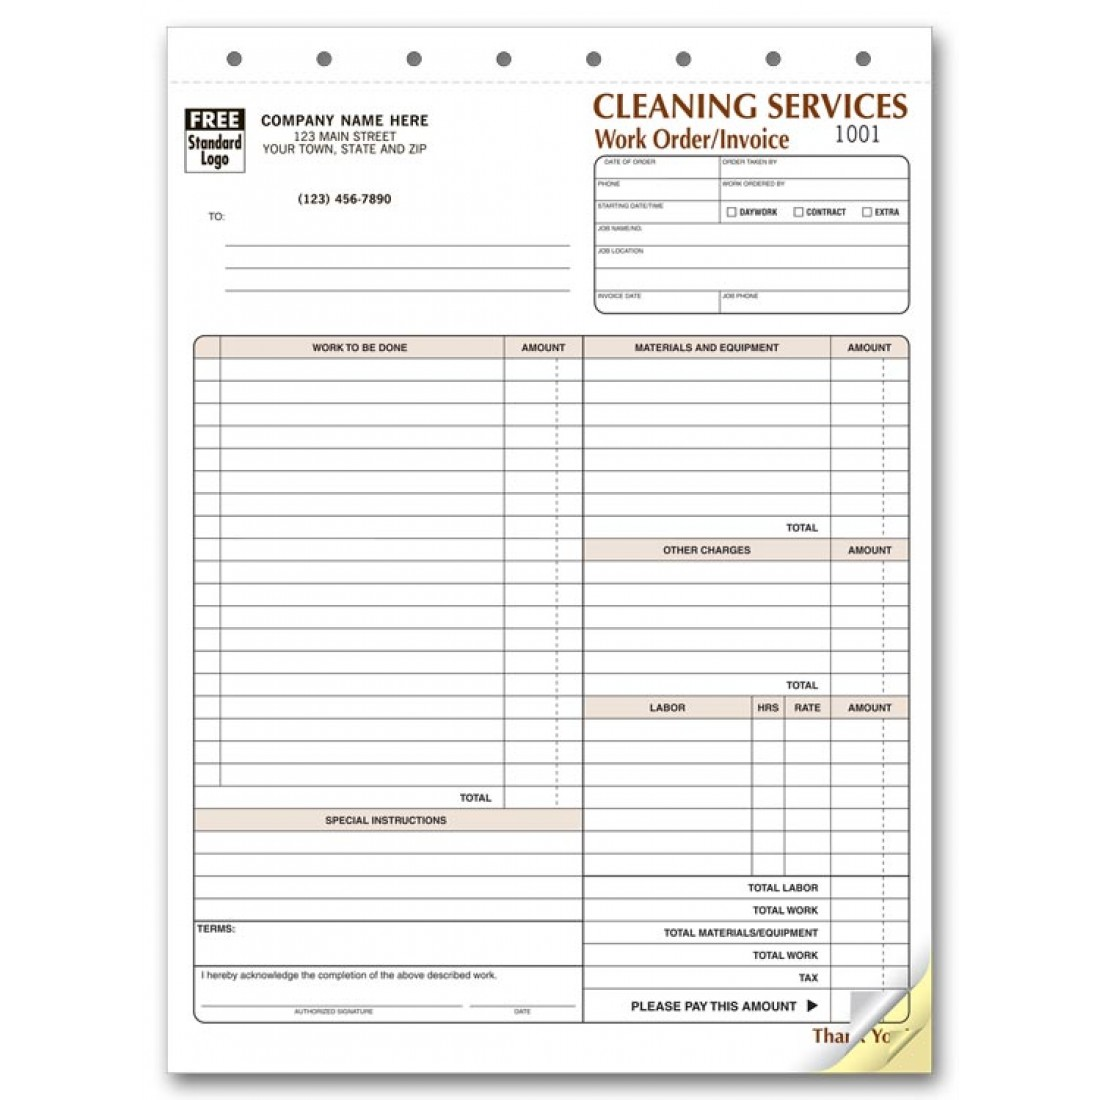 Cleaning Service Invoice Forms At Print Ez